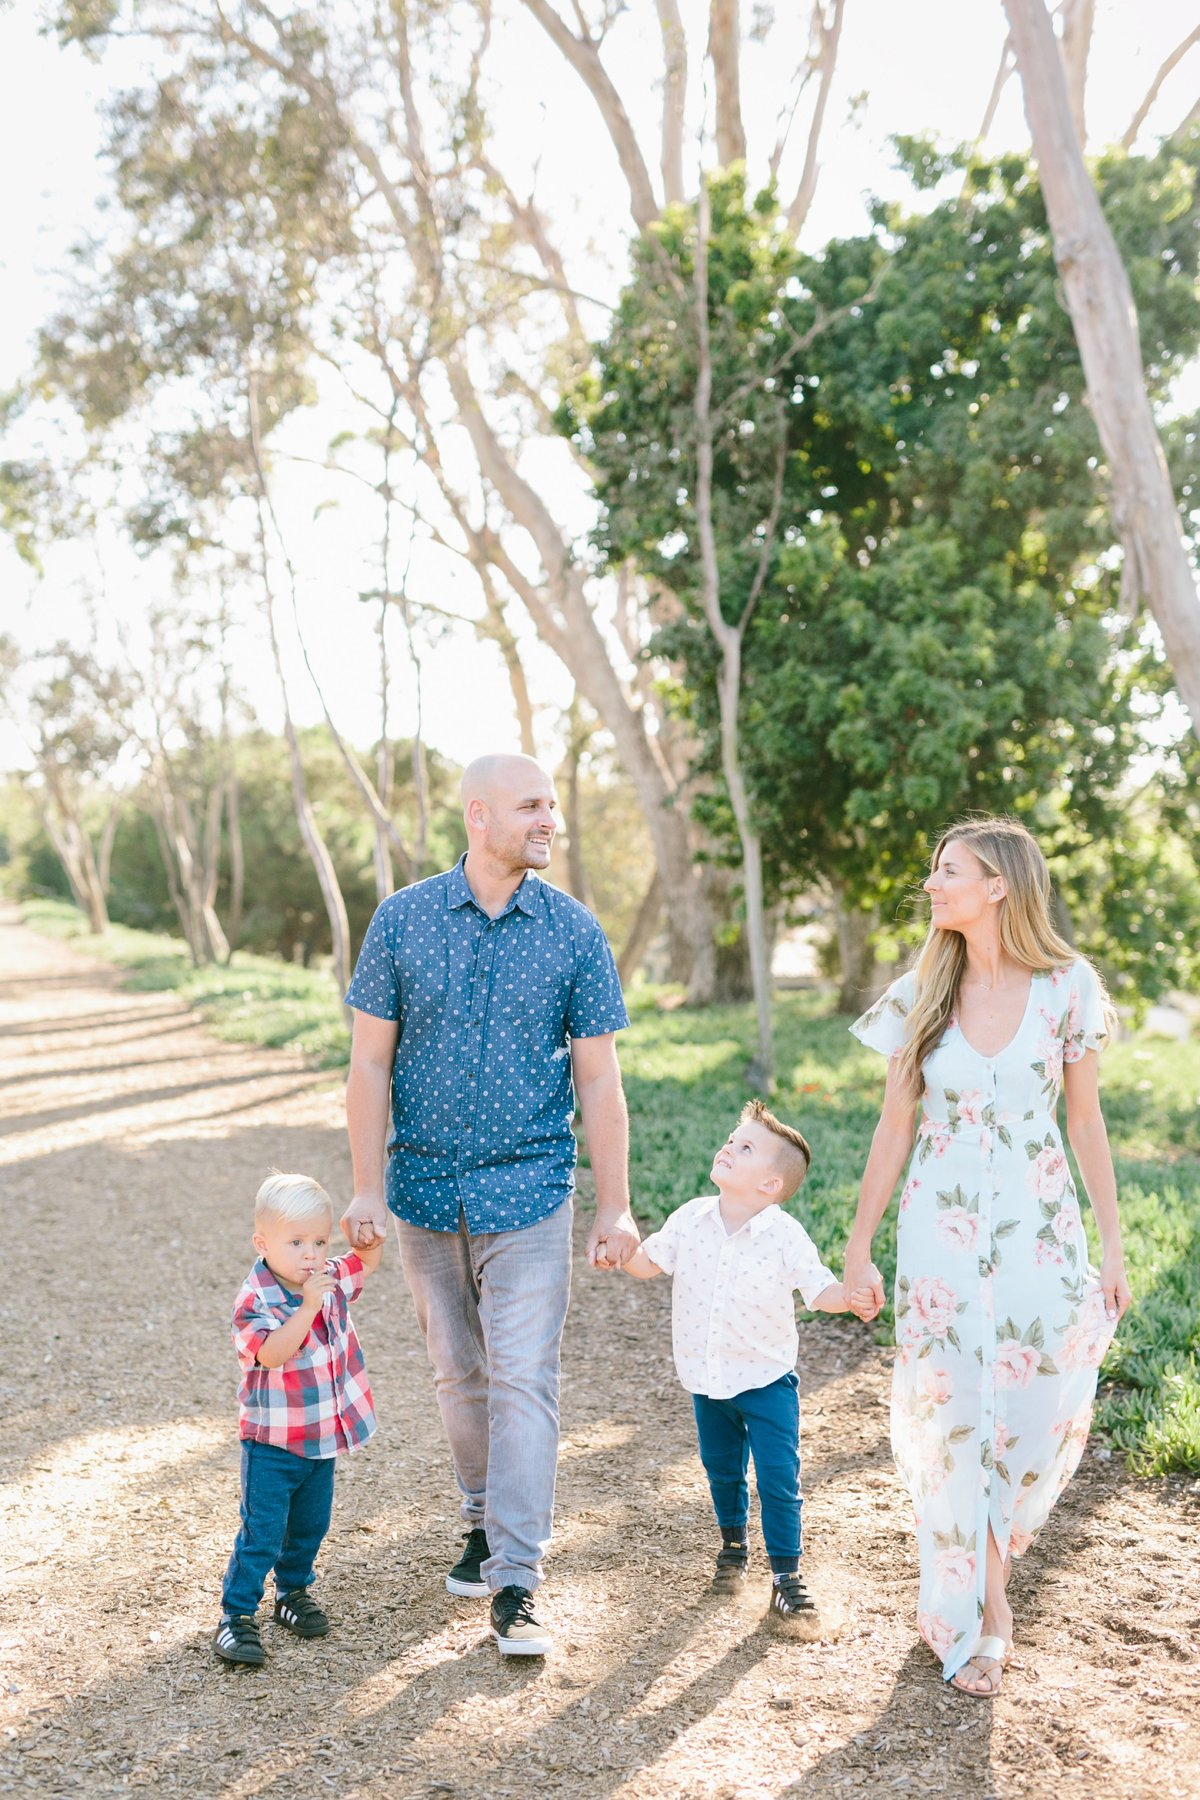 Family-Jodee Debes Photography-014